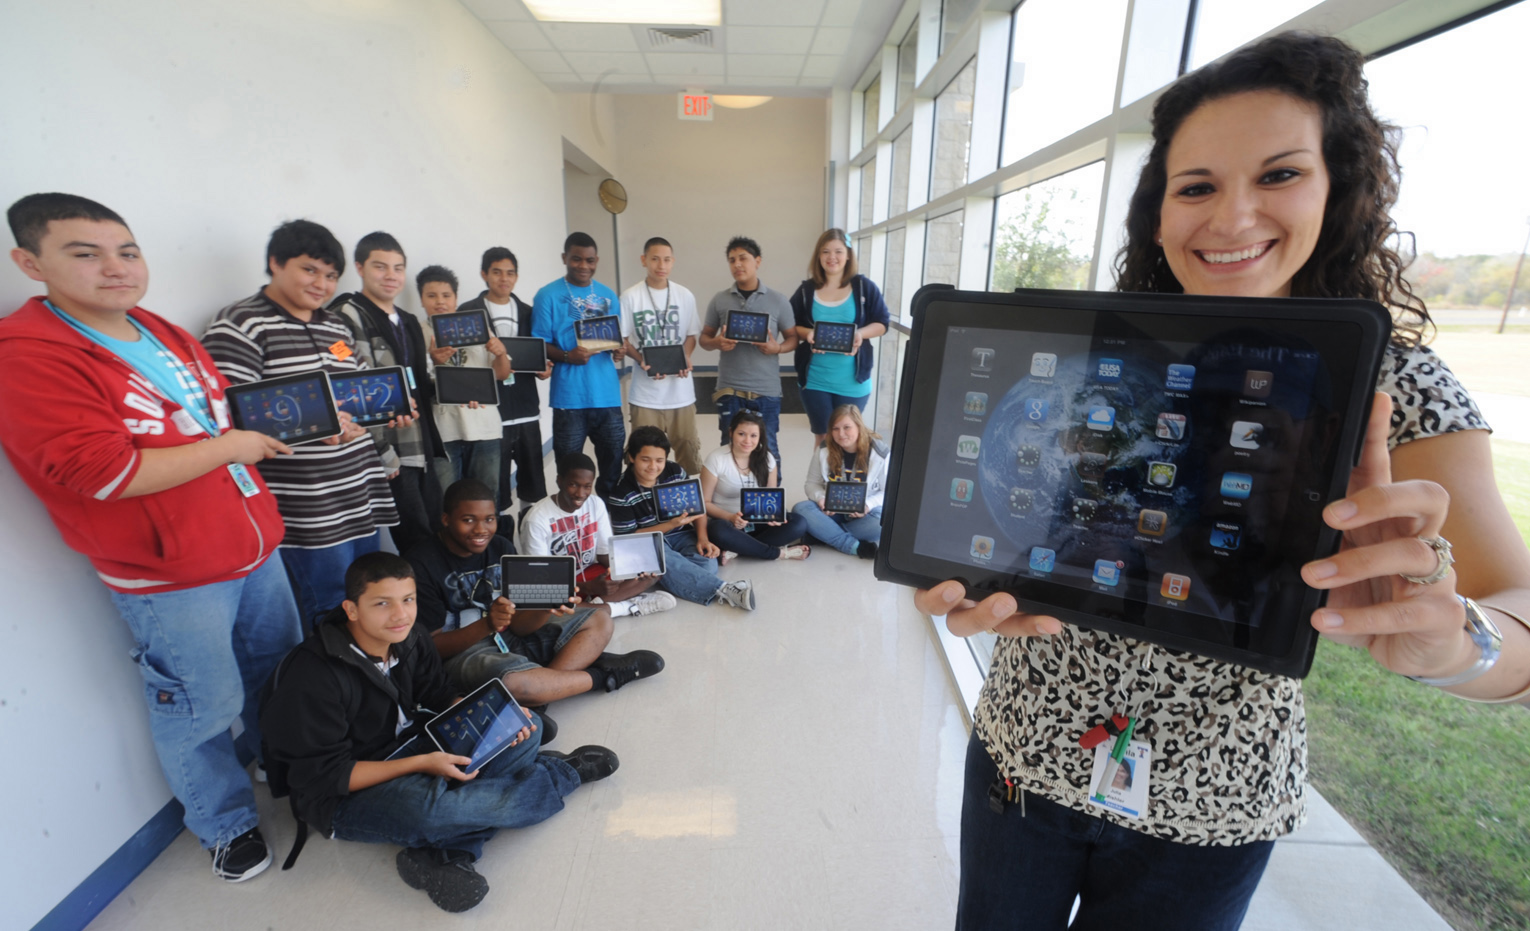 school wireless network infrastructure, bringing technology in the classroom, wifi companies,